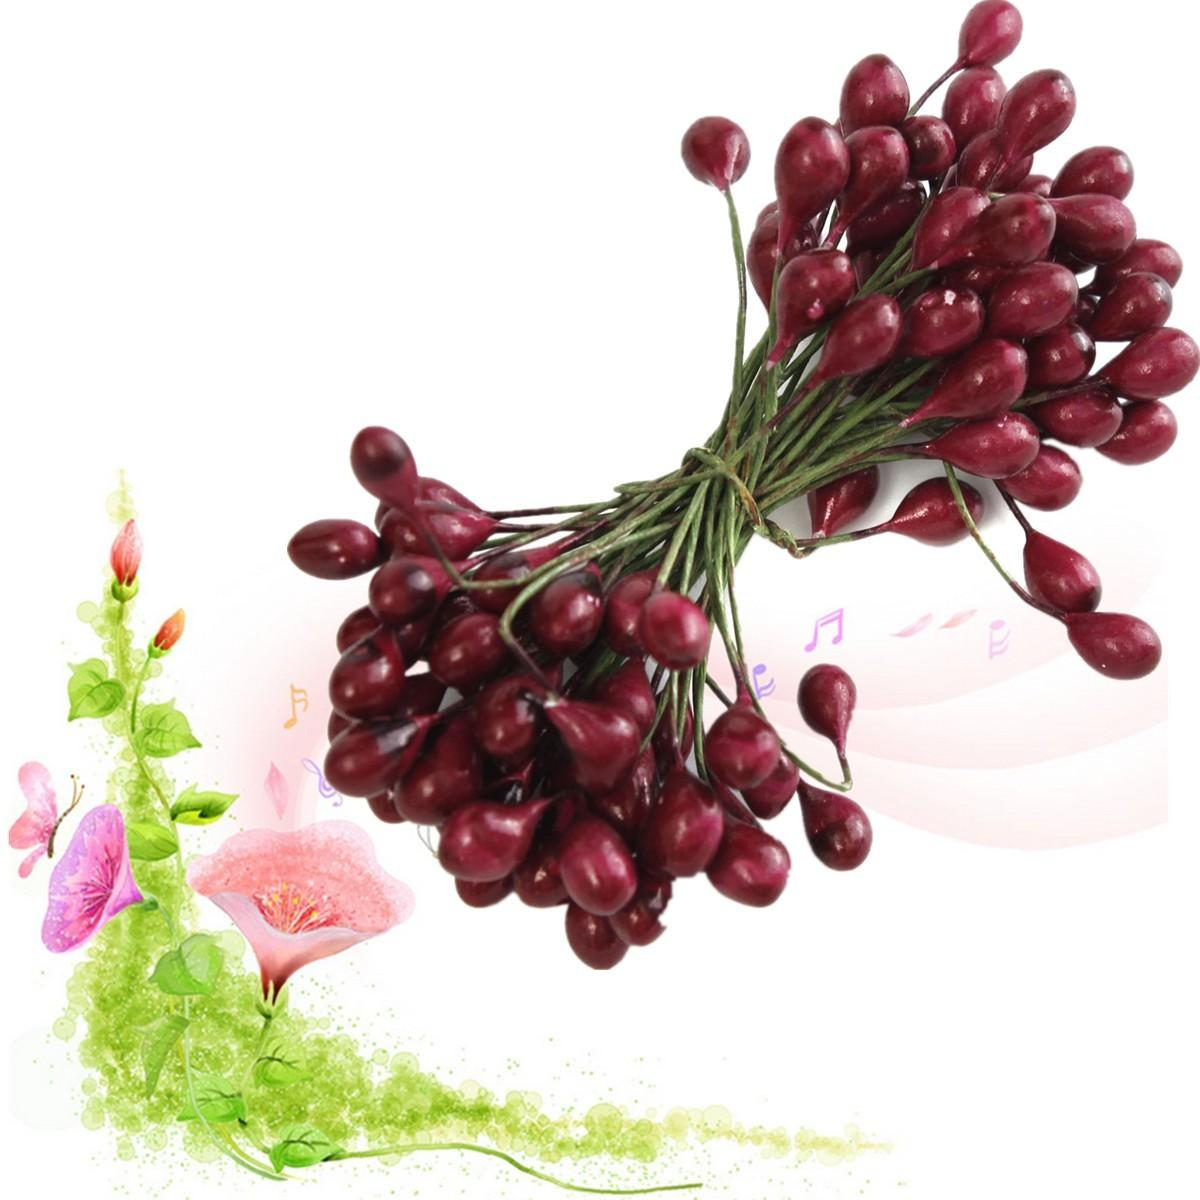 100pcs Artificial Red Holly Berry Berries 8mm Home Garland